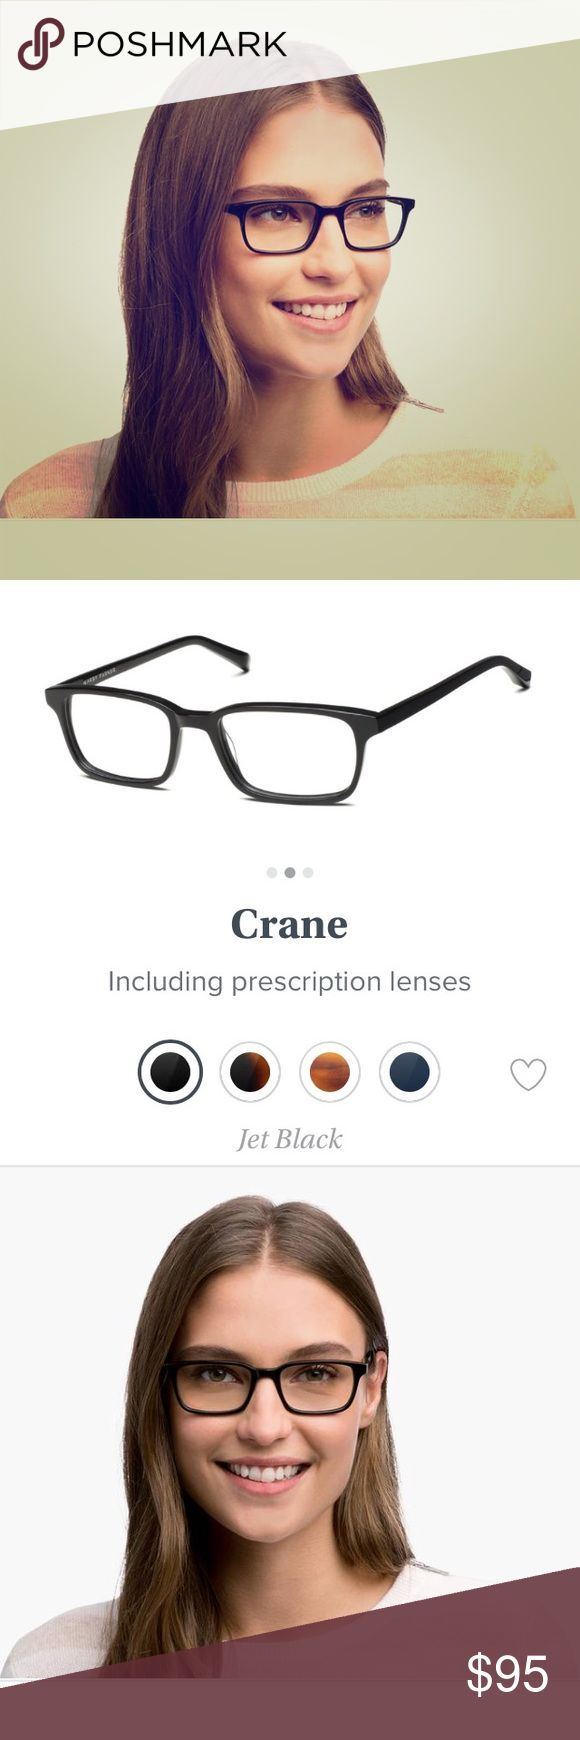 NWT Warby Parker Crane jet black eye glasses Authentic non prescription eye glasses. Super durable and chic. Open to reasonable offers. Glasses can be changed to prescription. Warby Parker Accessories Sunglasses